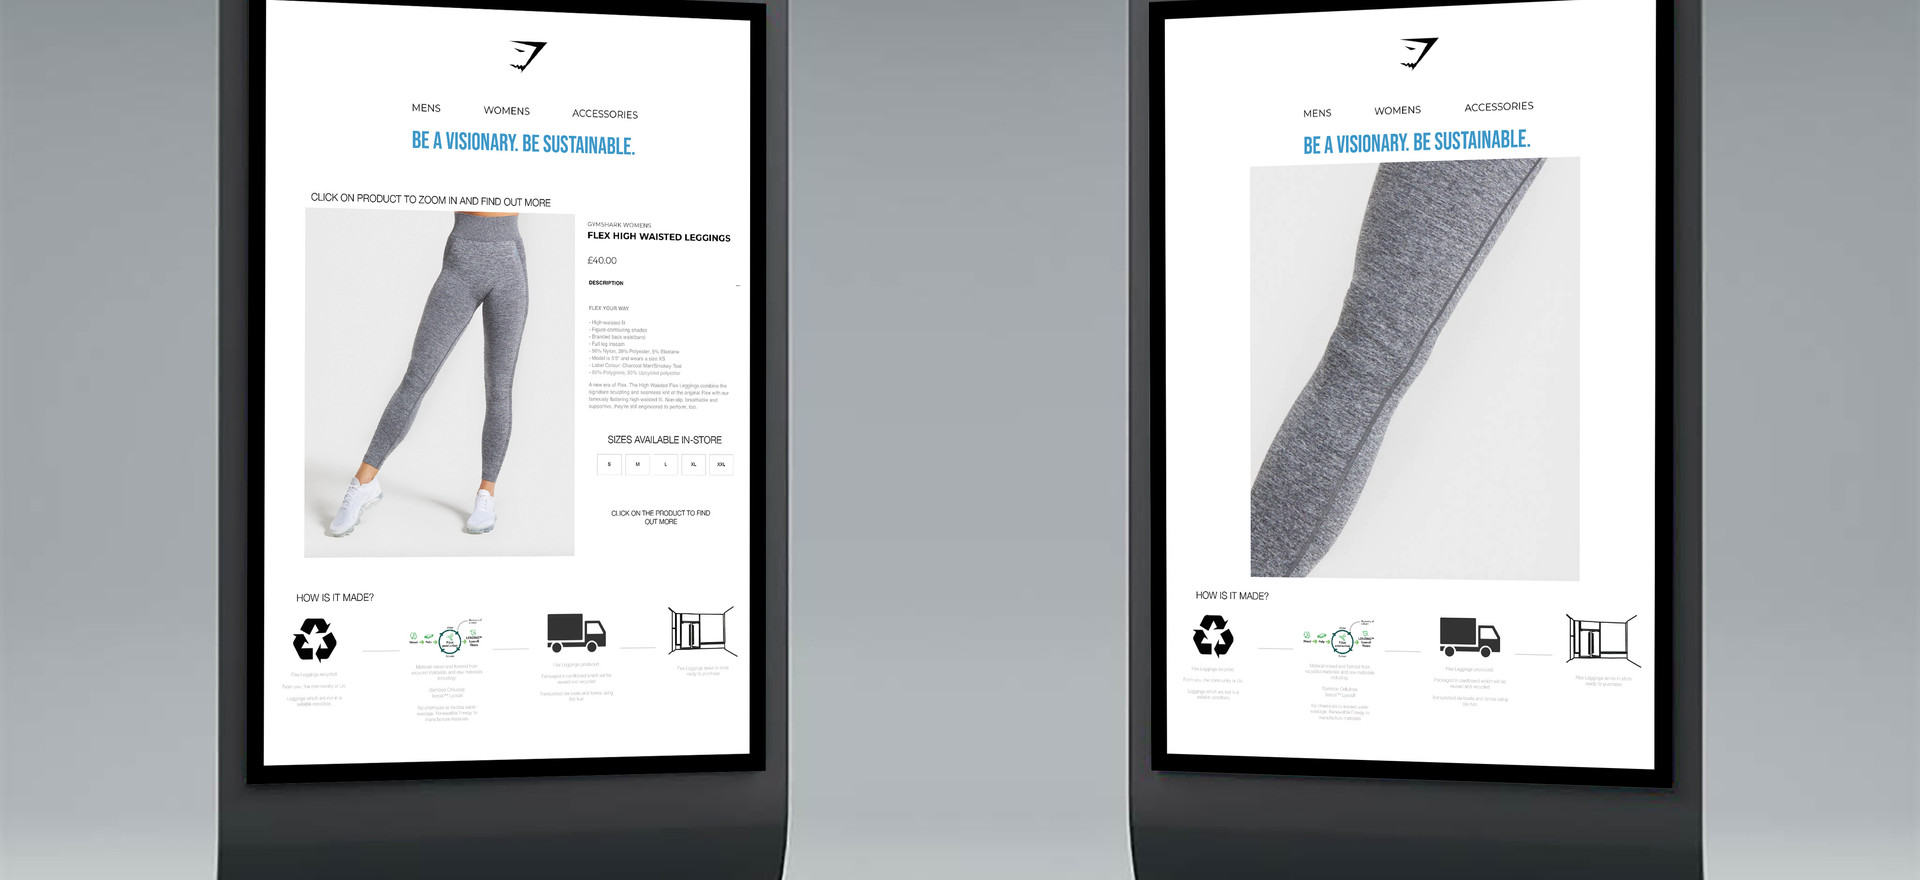 In-store digitial screen. This reflects the swing ticket QR code whereby the consumer is able to look up any product and trace how it was made. On the left is a full screen example and on the right is a zoomed example of the product.